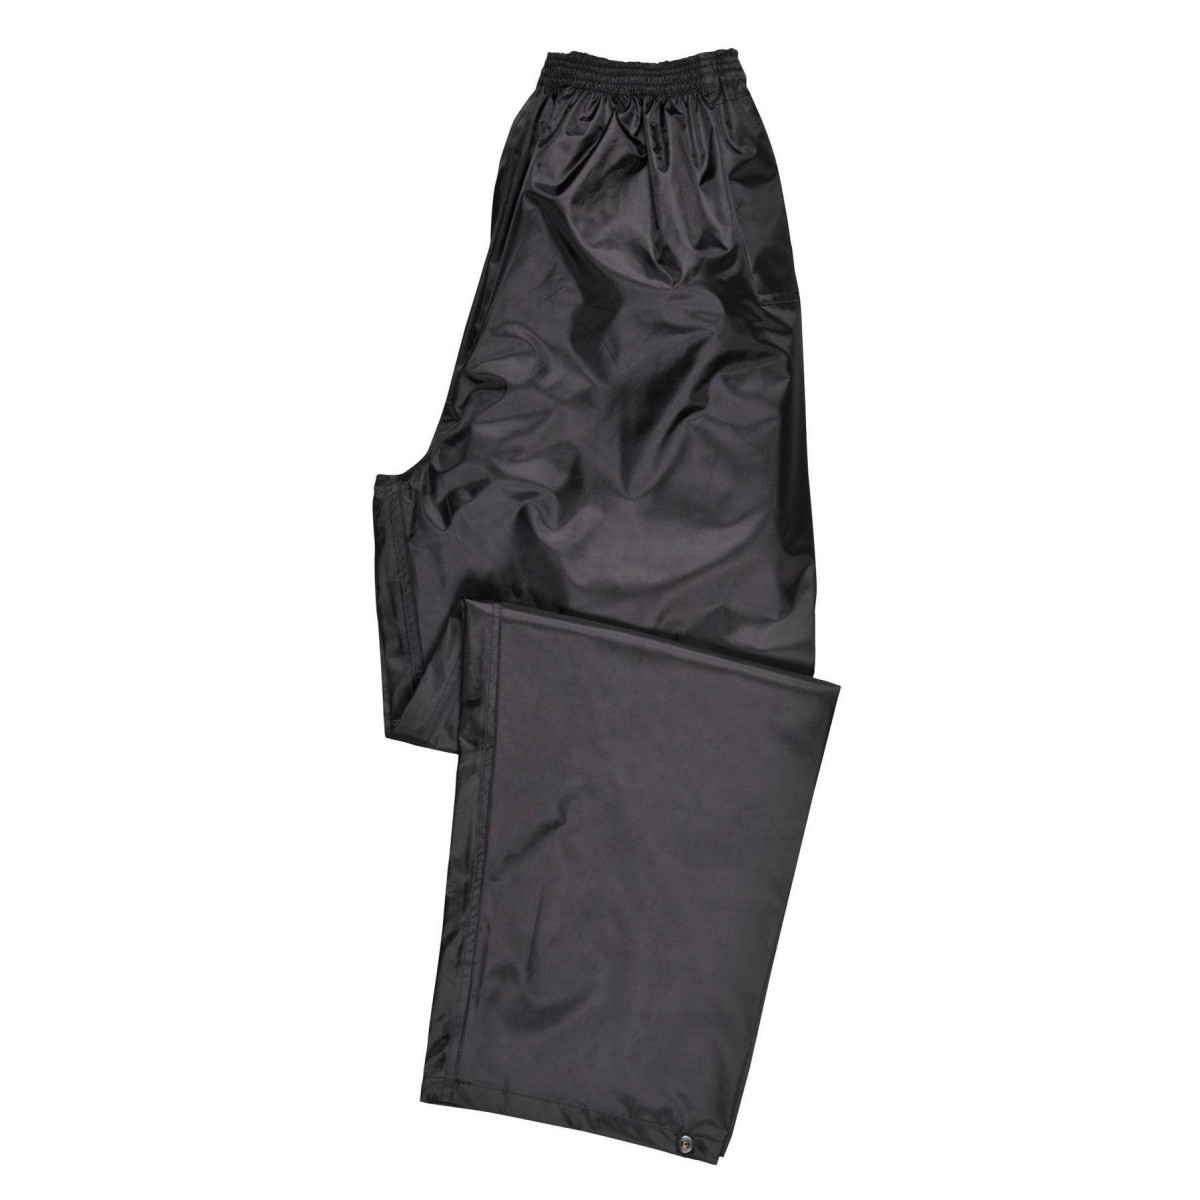 Portwest Lightweight Rain Trousers - S441 Black Small